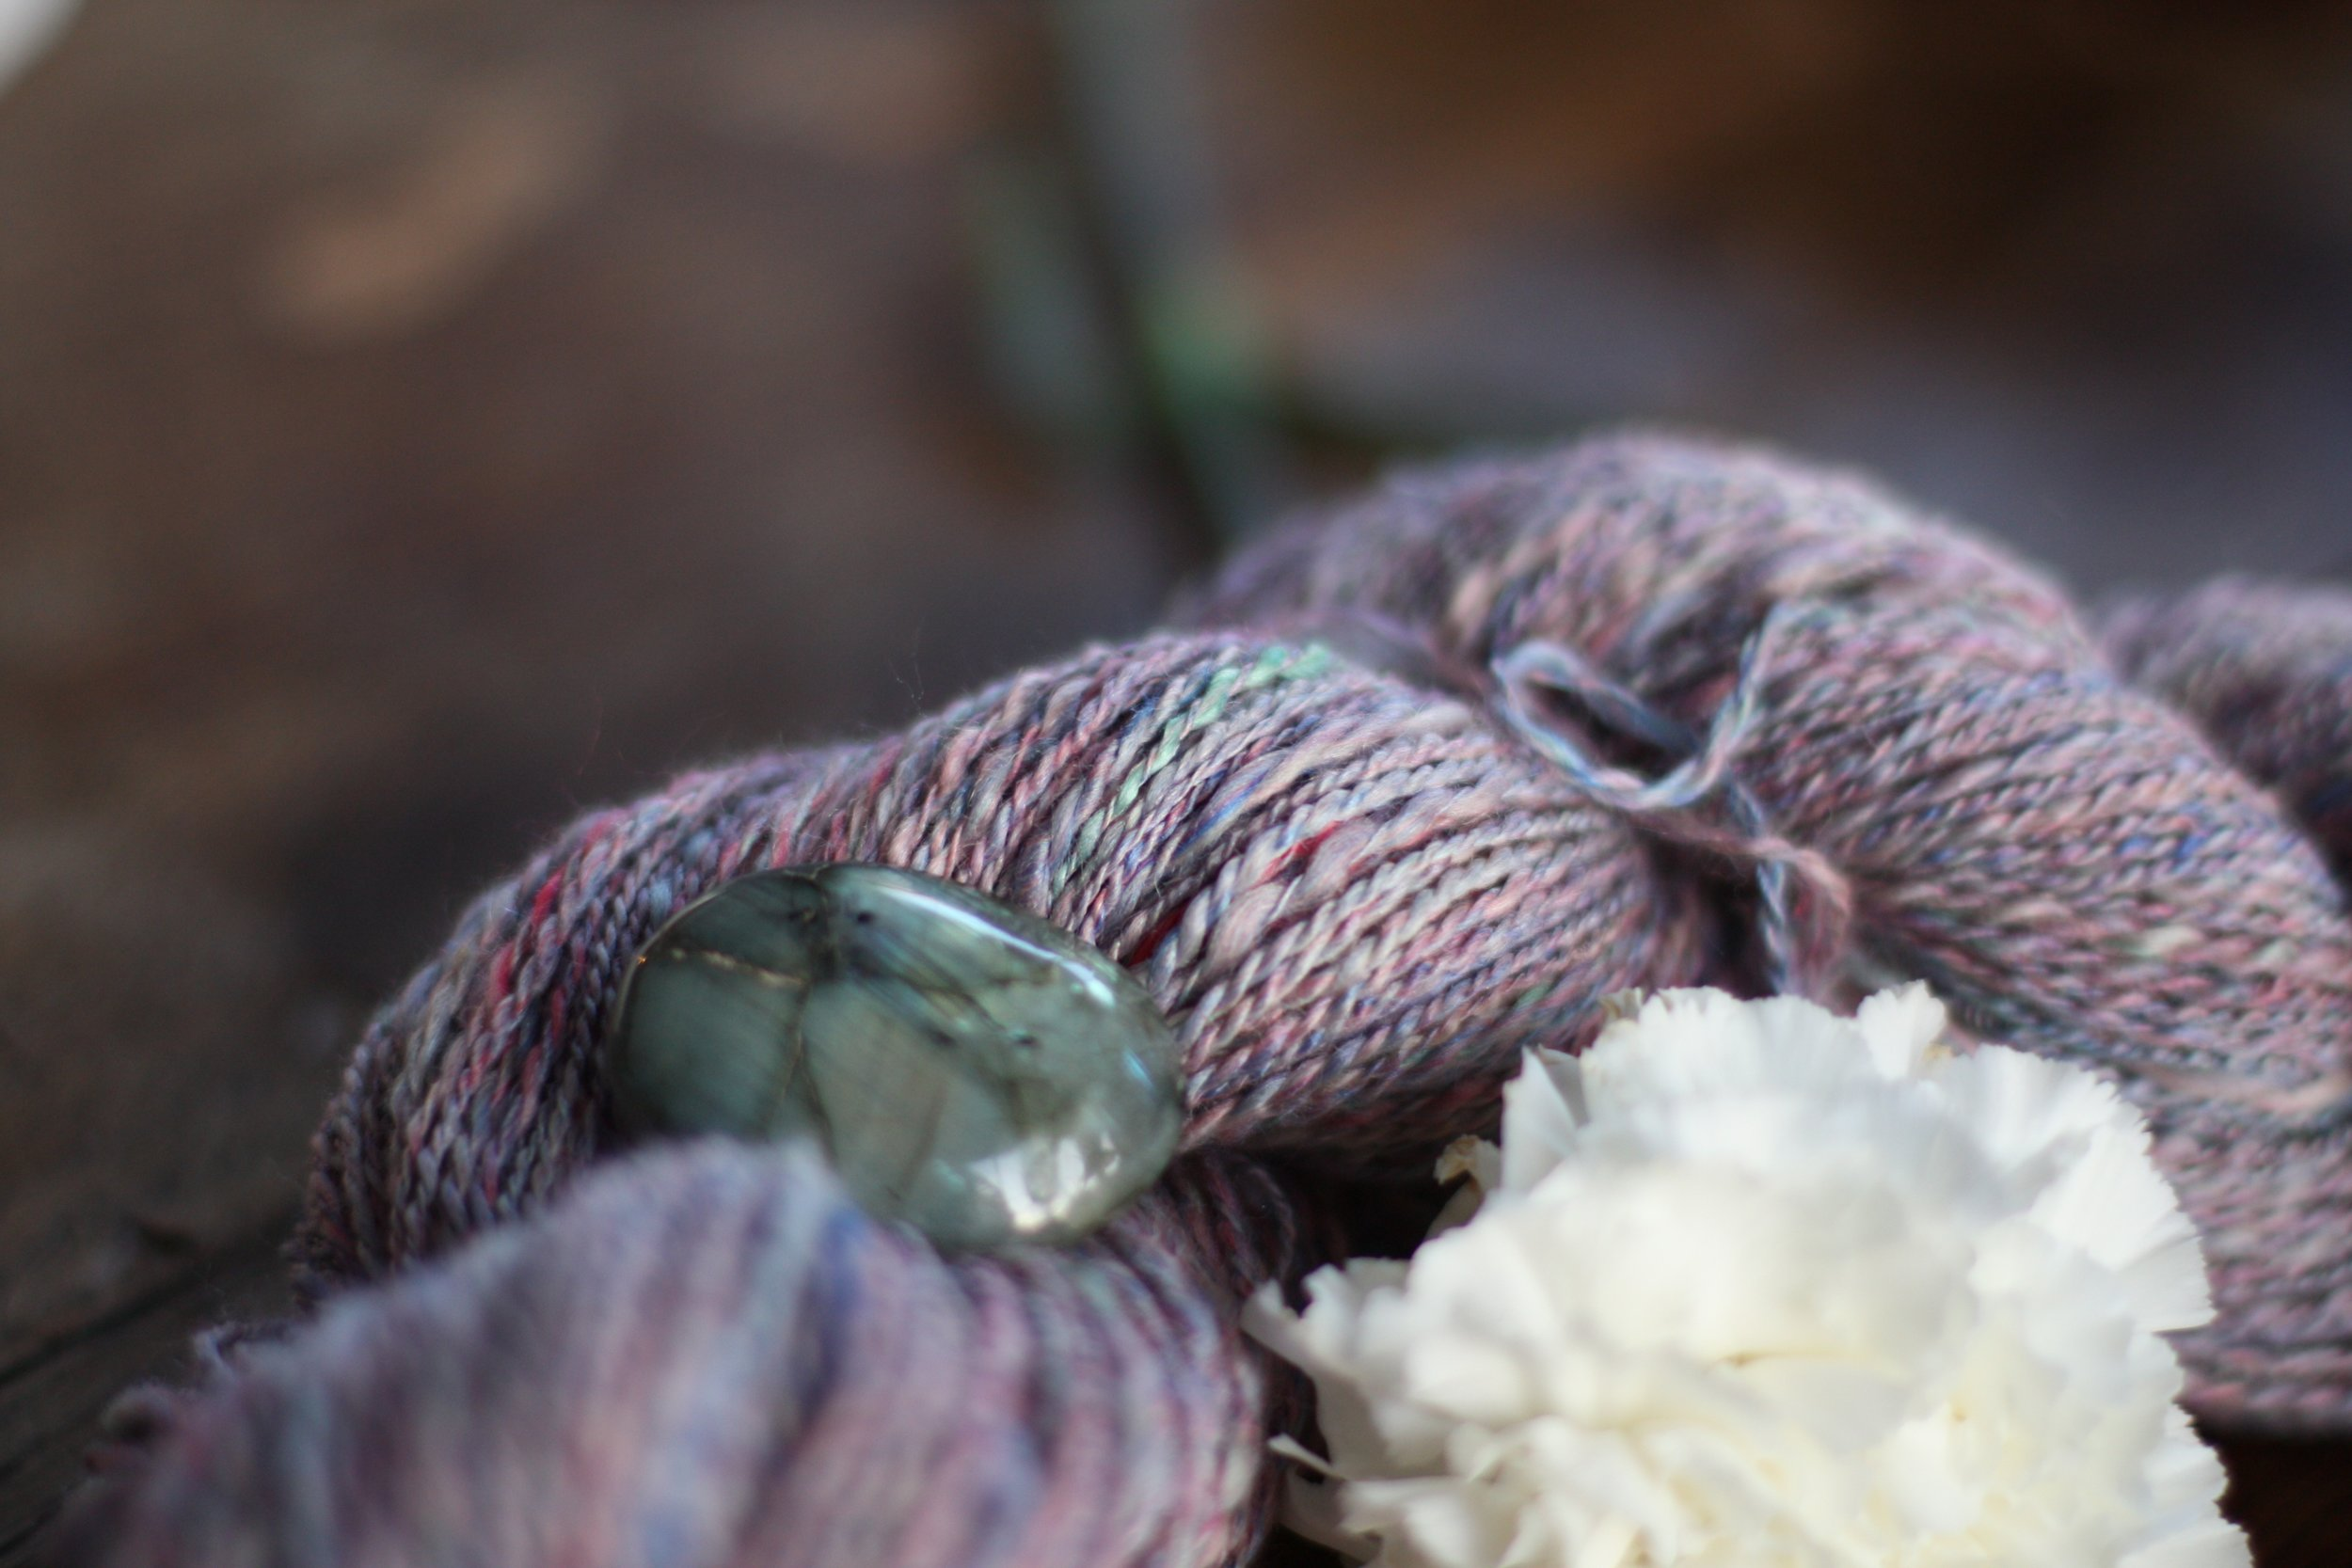 Hand spun skein of a luxury fiber blend with labradorite | 14 Mile Farm Handweaving and Homesteading in Alaska